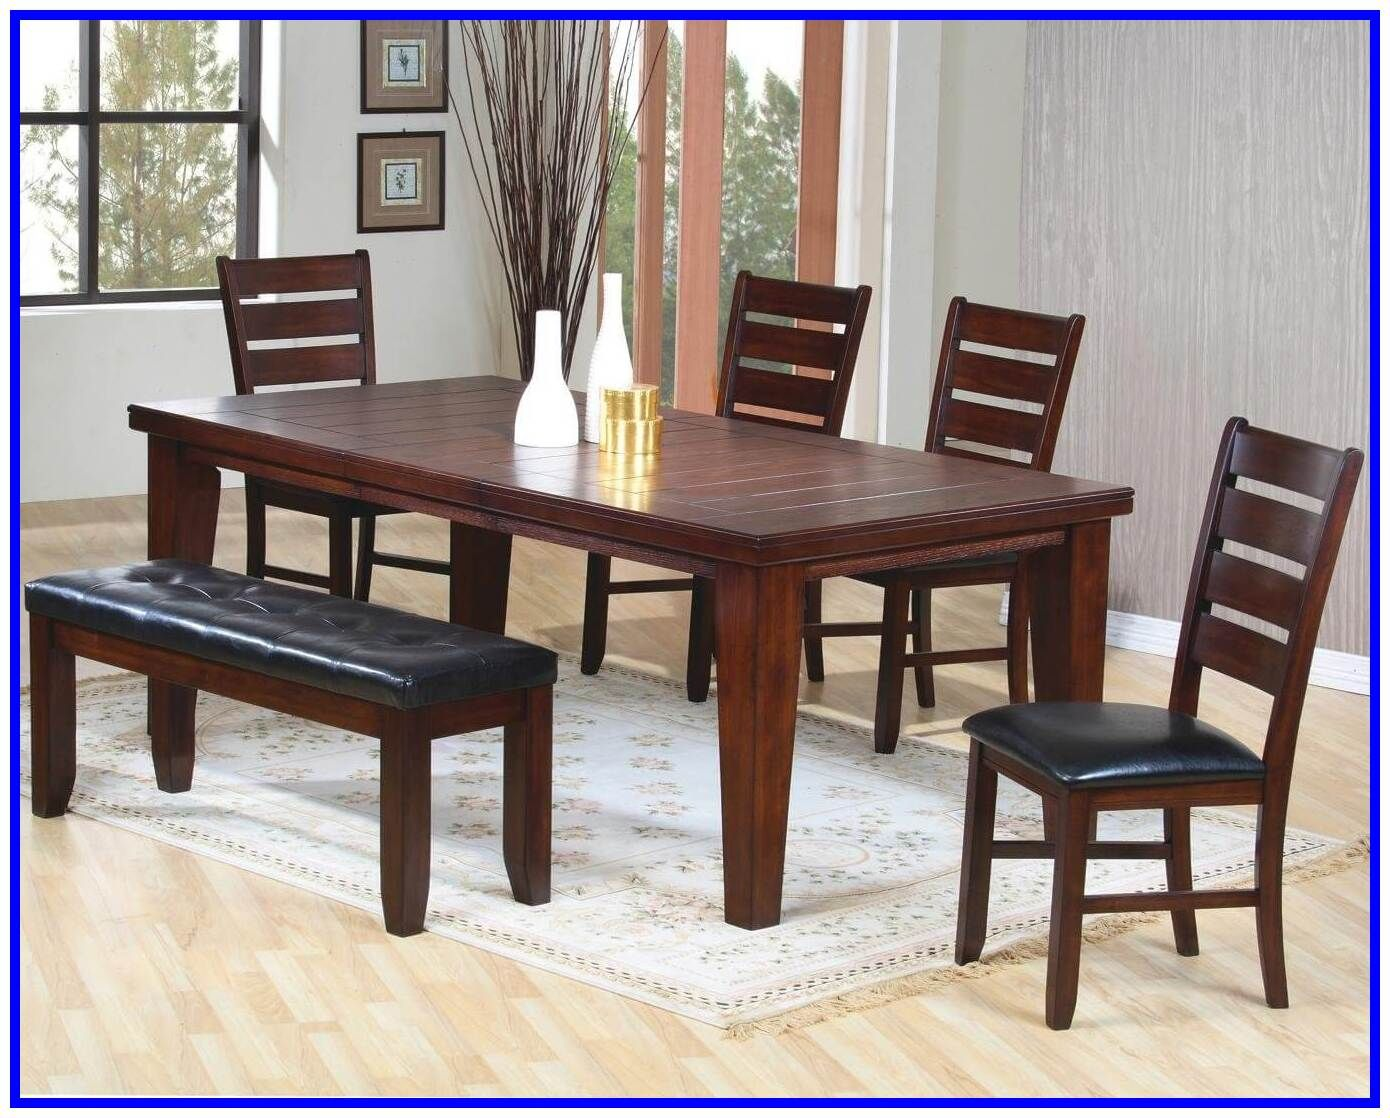 71 Reference Of Black Wood Dining Table Bench Dining Table With Bench Dark Wood Dining Room Set Dark Wood Dining Table